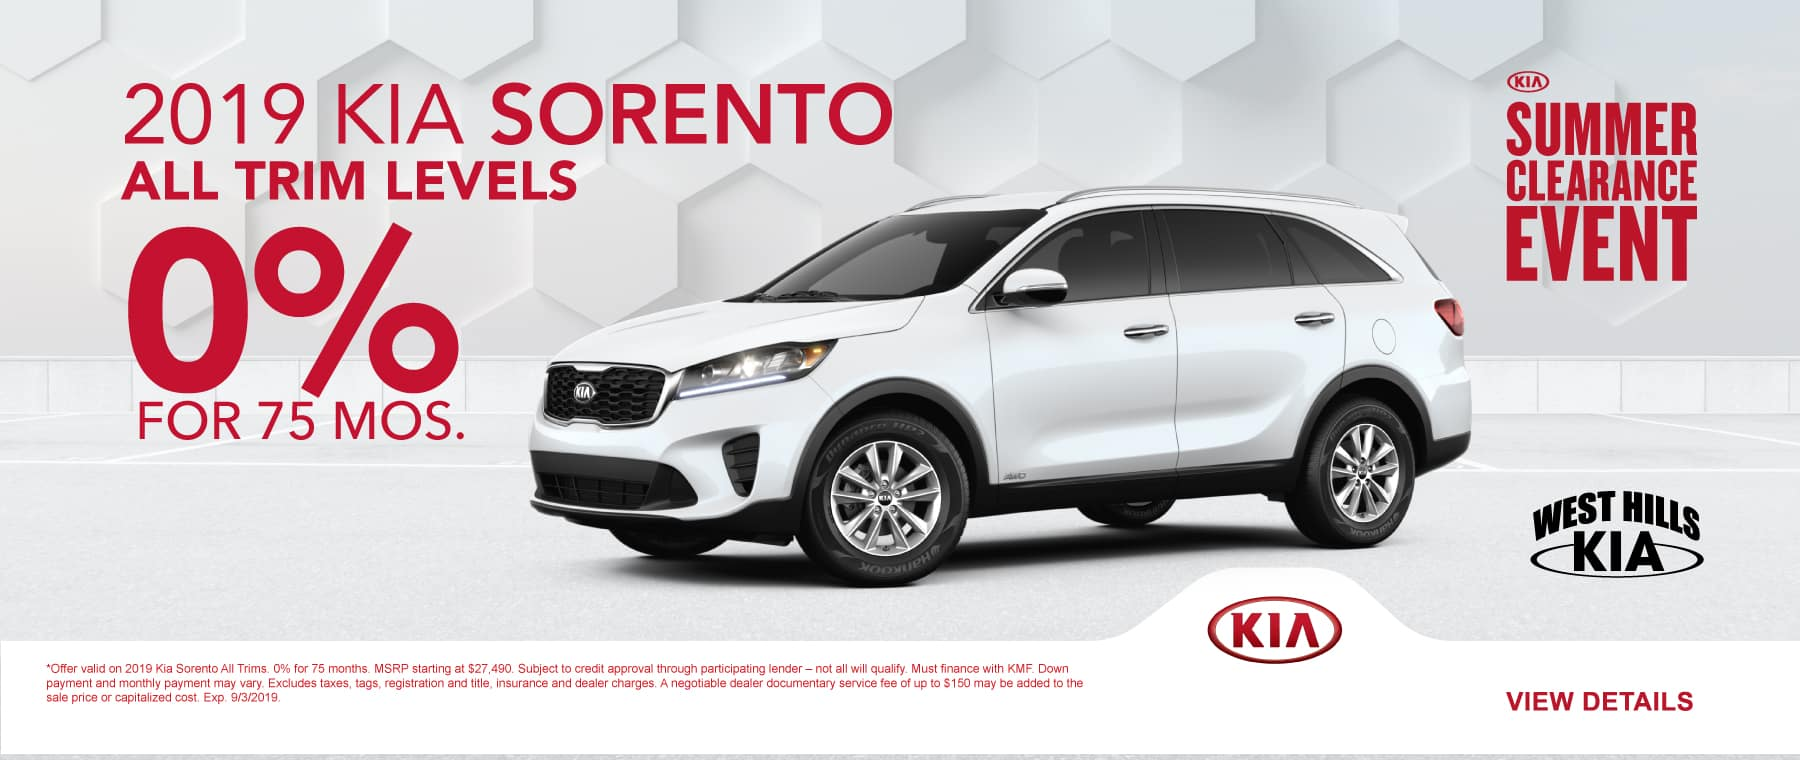 2019 Kia Sorento All Trims (featured vehicle)  * 0% for 75 months   *Offer valid on 2019 Kia Sorento All Trims. 0% for 75 months. MSRP starting at $27,490. Subject to credit approval through participating lender – not all will qualify. Must finance with KMF. Down payment and monthly payment may vary. Excludes taxes, tags, registration and title, insurance and dealer charges. A negotiable dealer documentary service fee of up to $150 may be added to the sale price or capitalized cost. Exp. 9/3/2019.